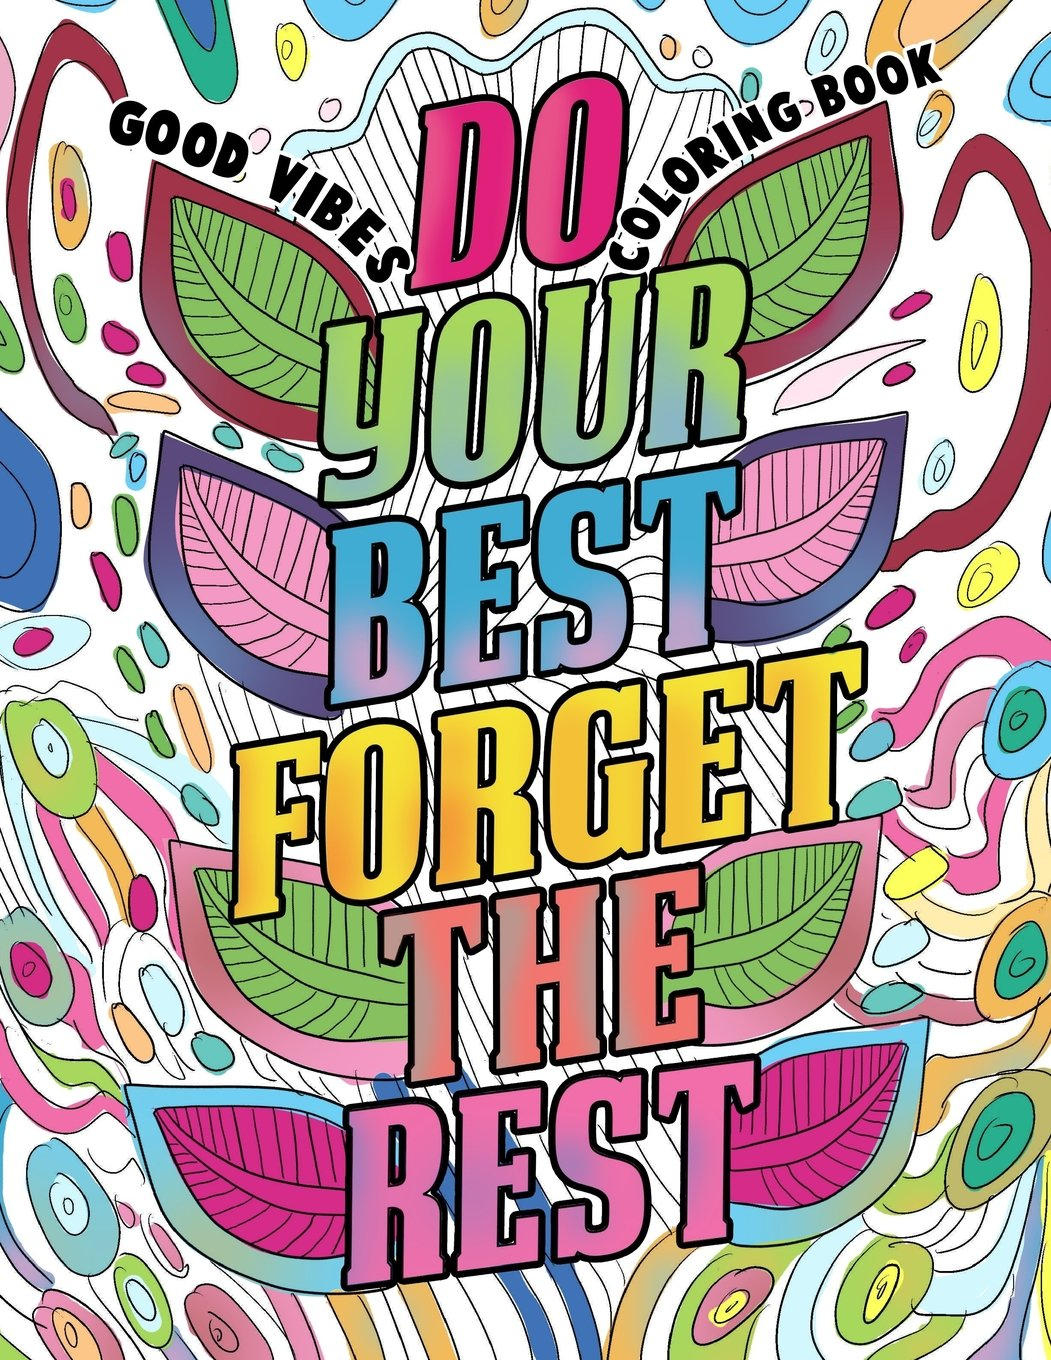 - Amazon.com: Good Vibes Coloring Book: A Motivational Coloring Book